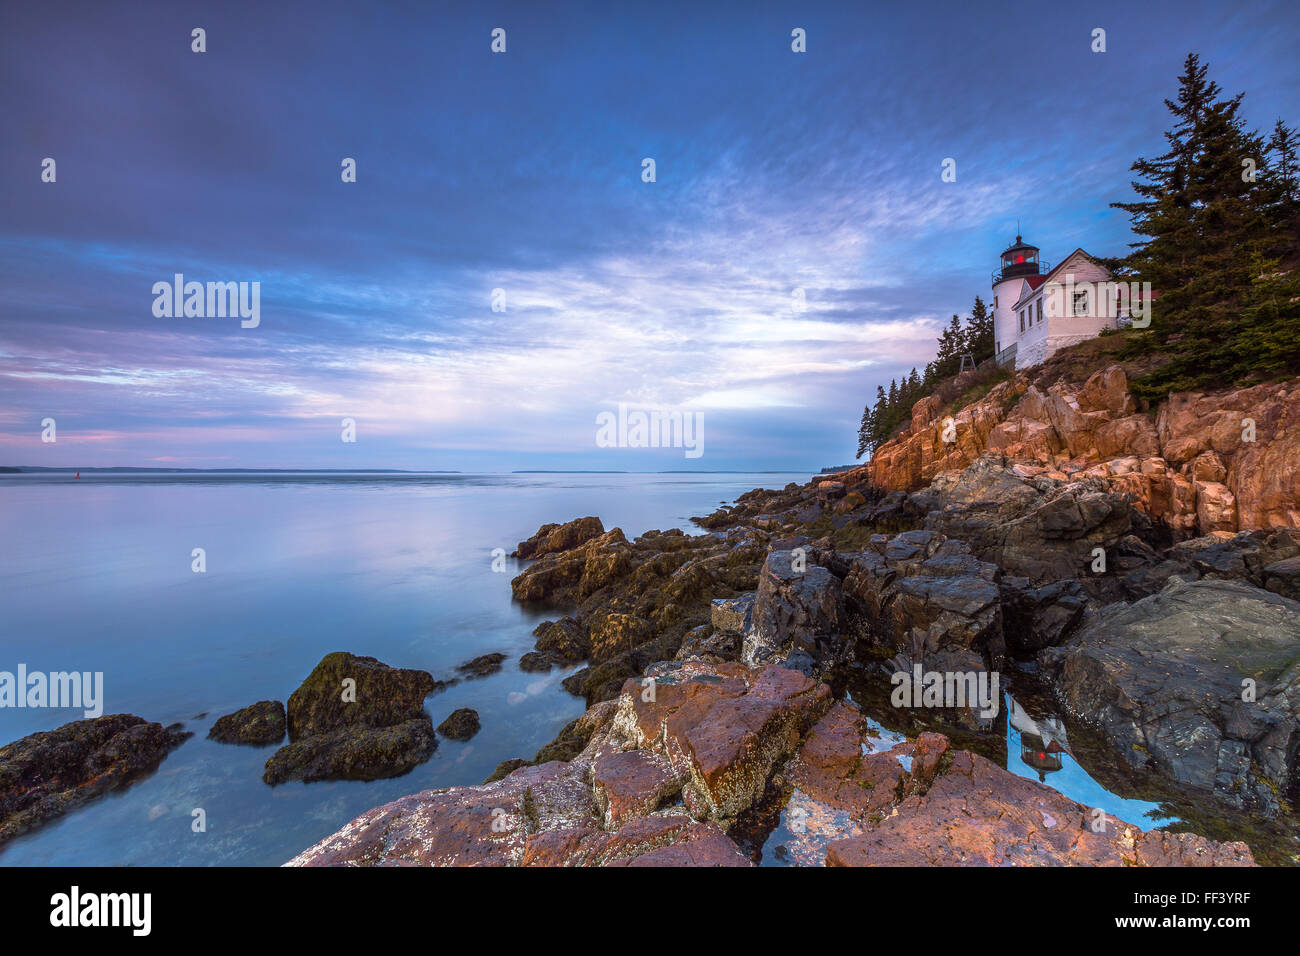 The iconic Bass Harbor Head Lighthouse is reflected in a tidepool at sunrise in Acadia National Park, Mount Desert Stock Photo